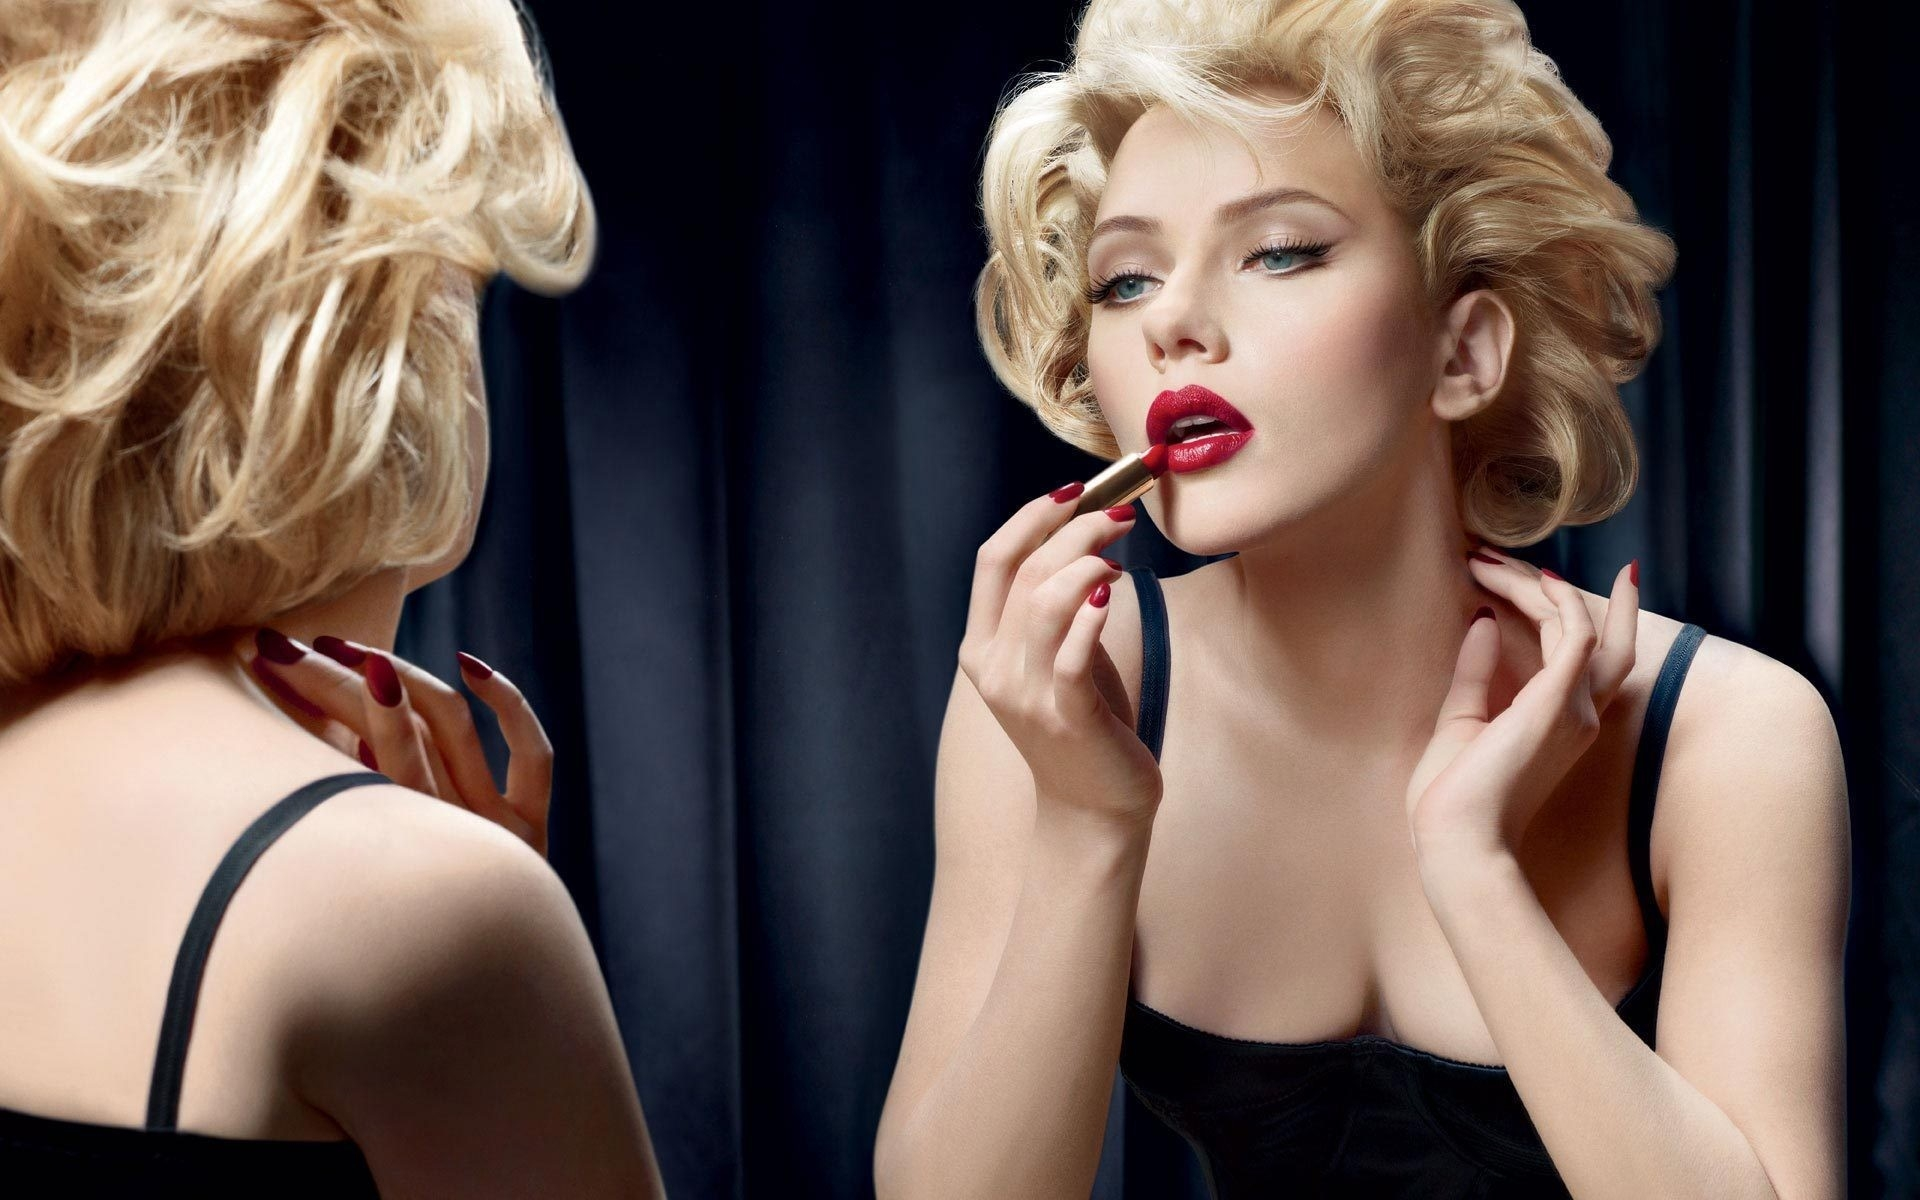 Why You Shouldn't Judge A Woman Based On Her Makeup